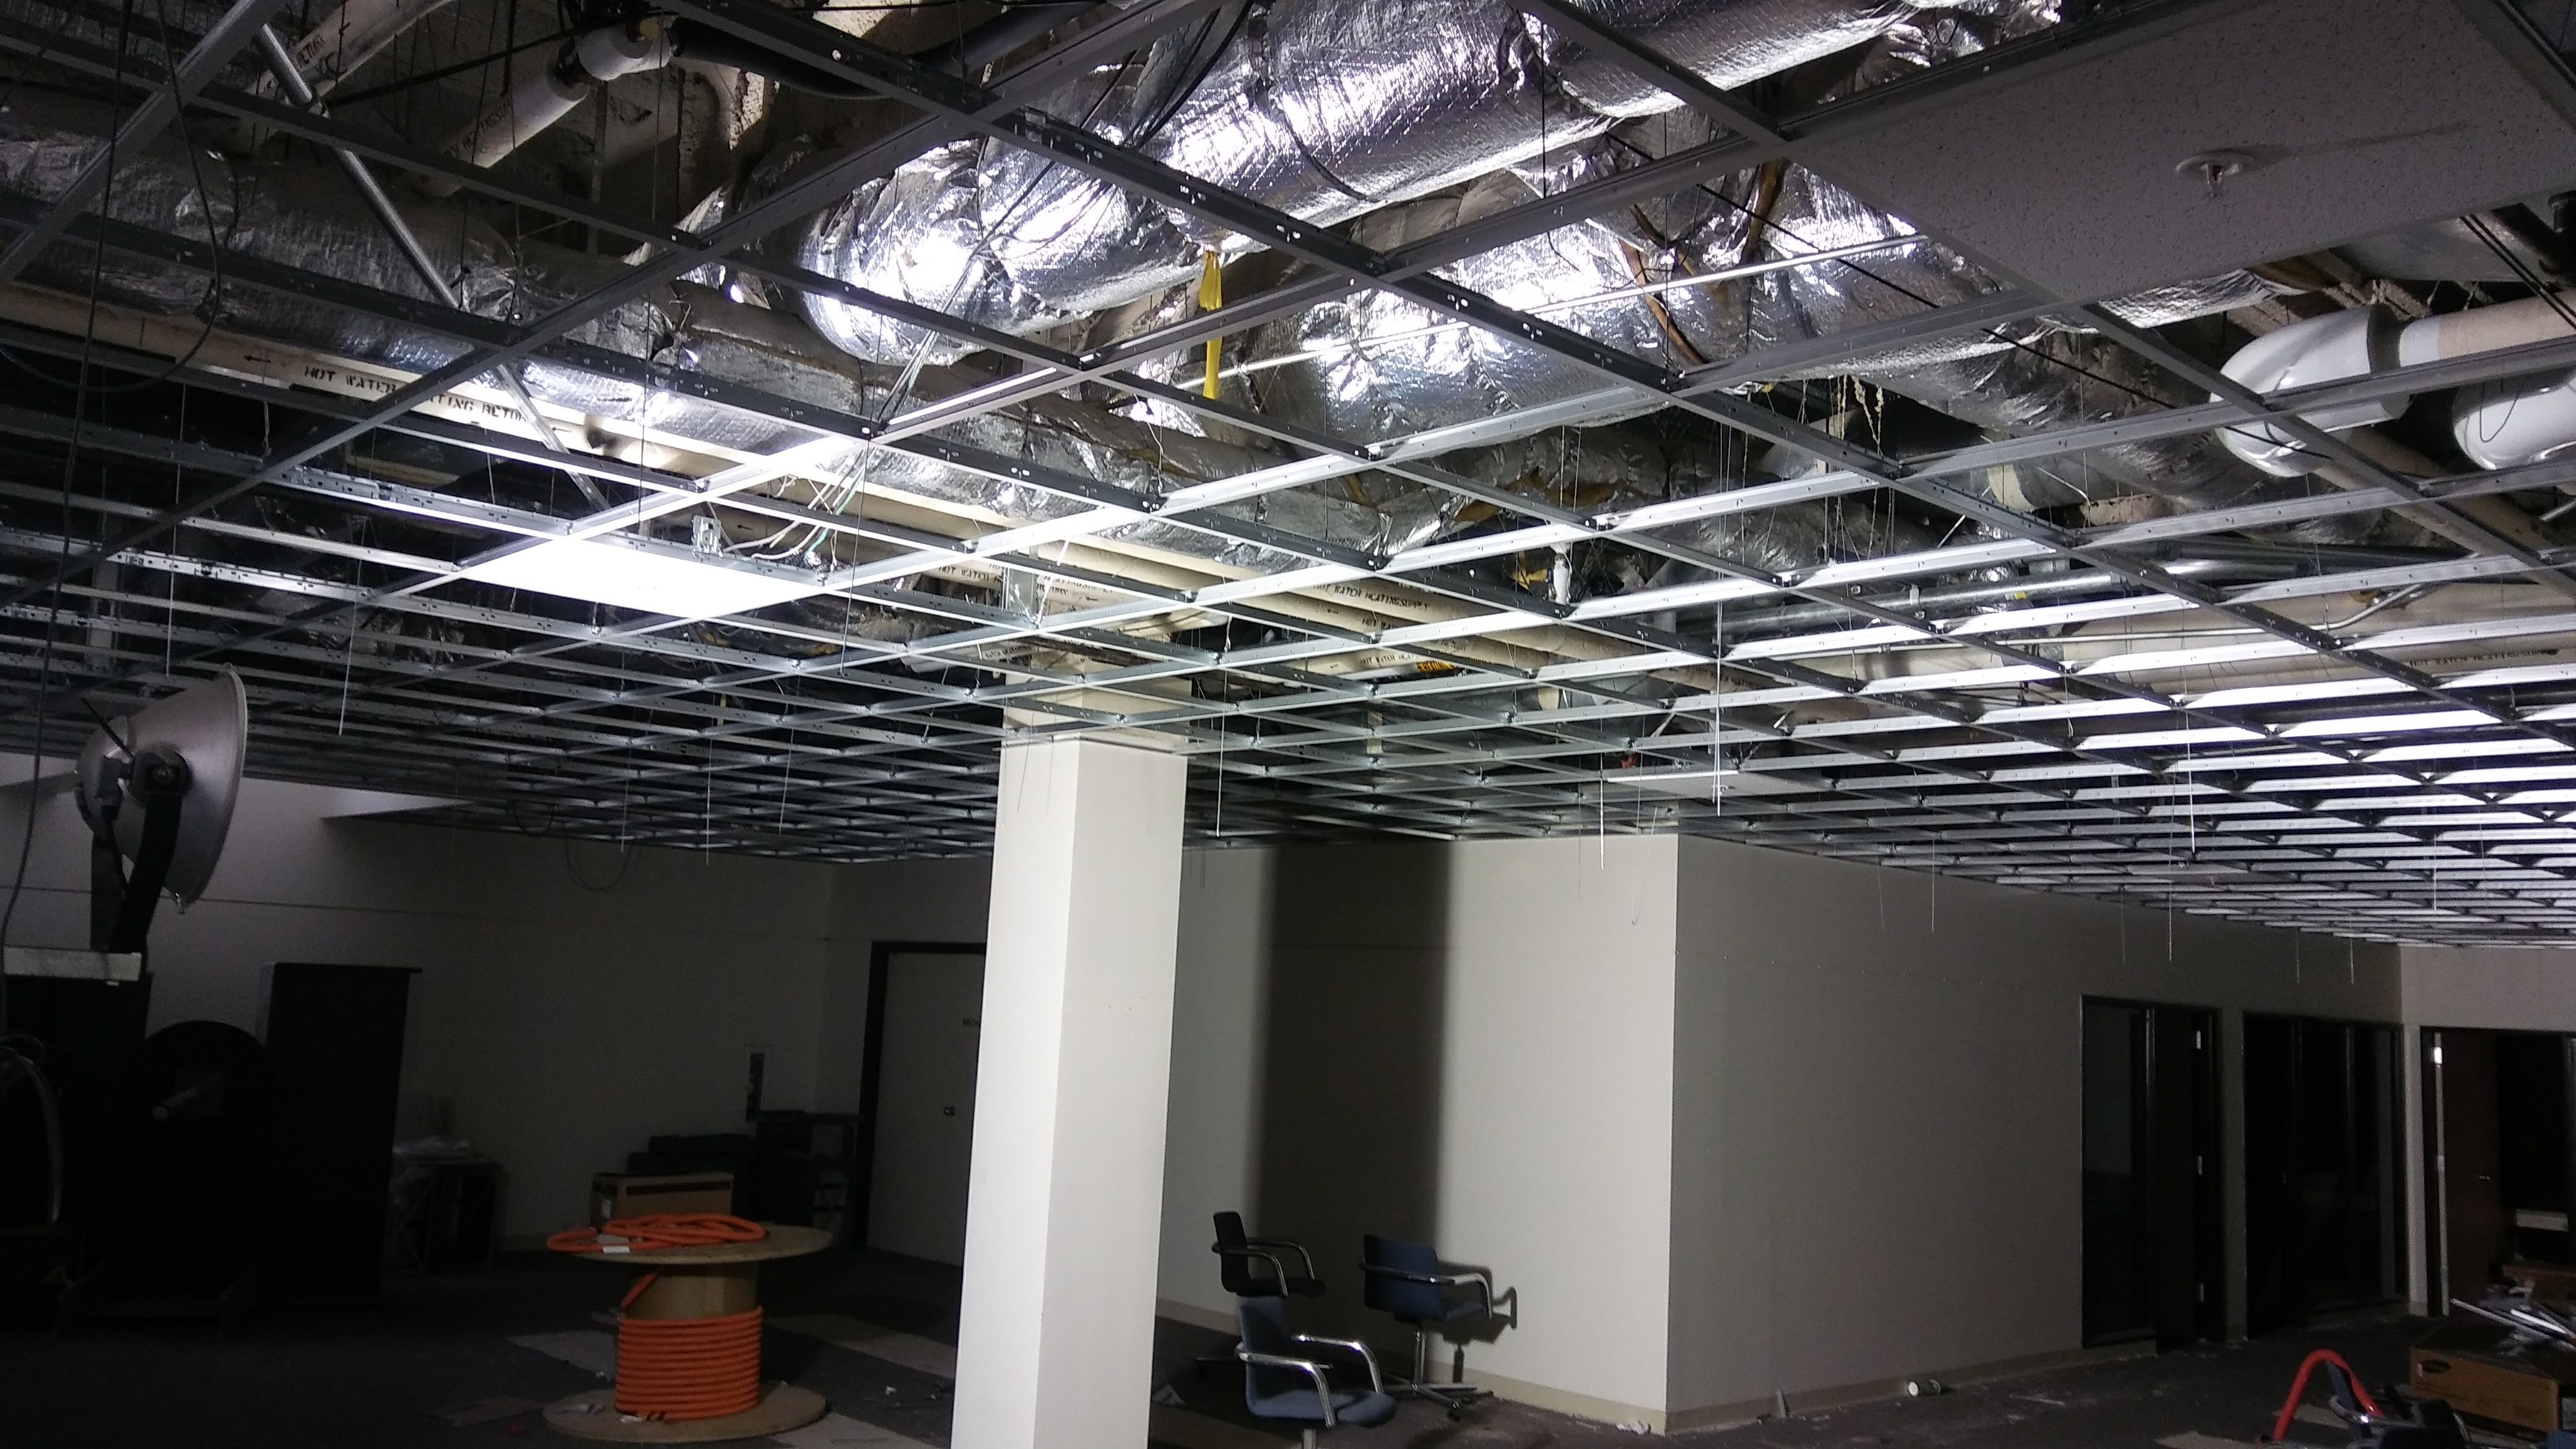 Ceiling grid in student area